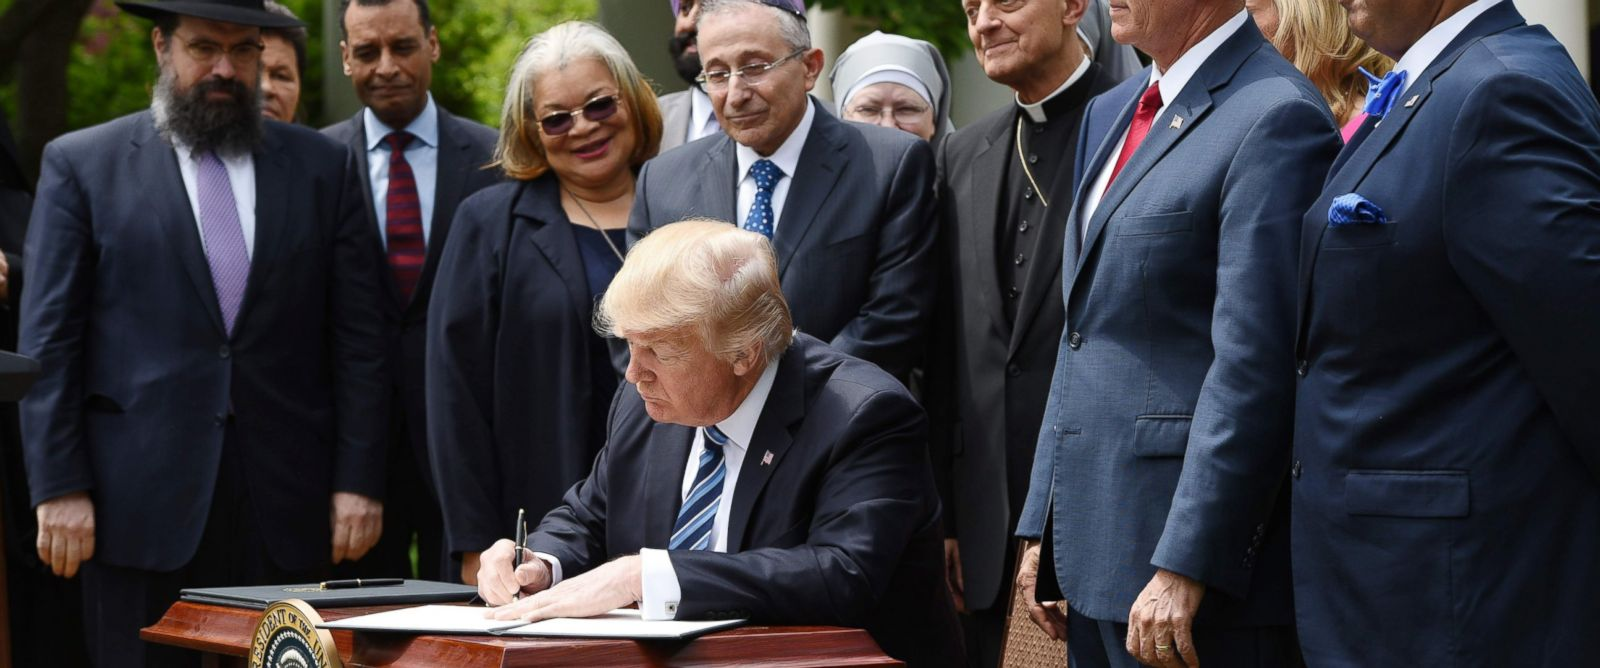 PHOTO: President Donald Trump signs an Executive Order on Promoting Free Speech and Religious Liberty in the Rose Garden of the White House, May 4, 2017, Washington.